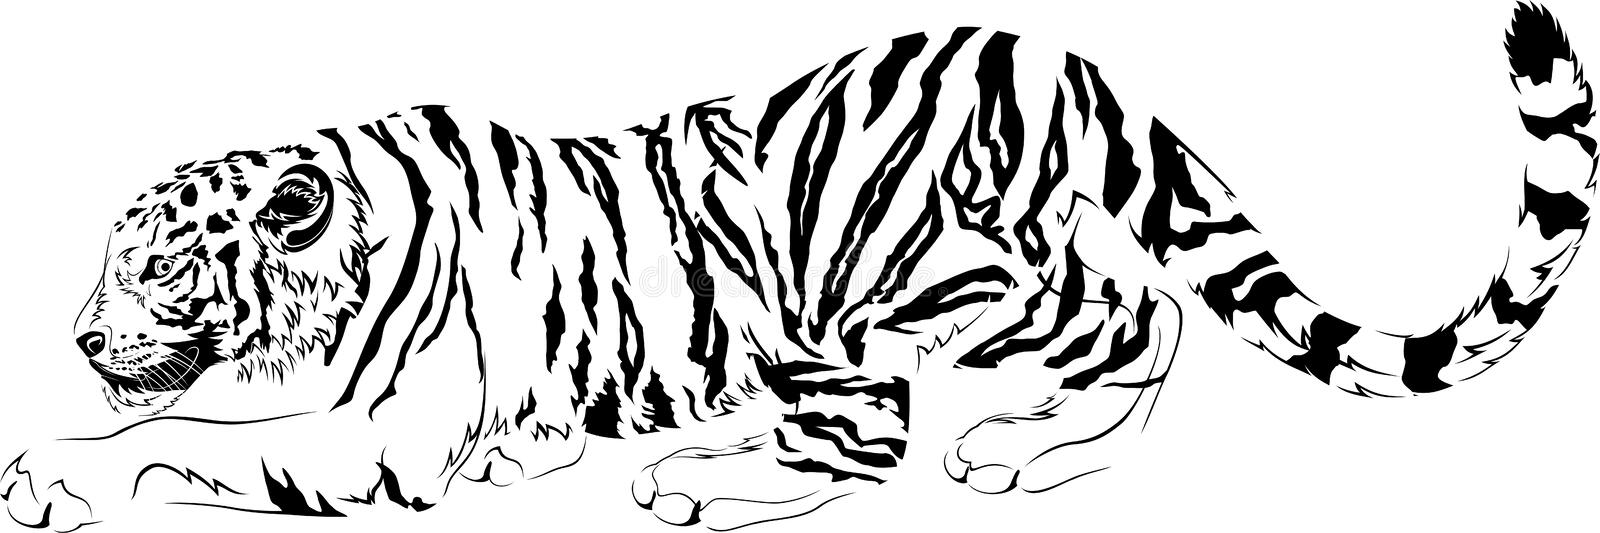 Vector drawings black and white predator tiger designe. For tattoo logo royalty free illustration